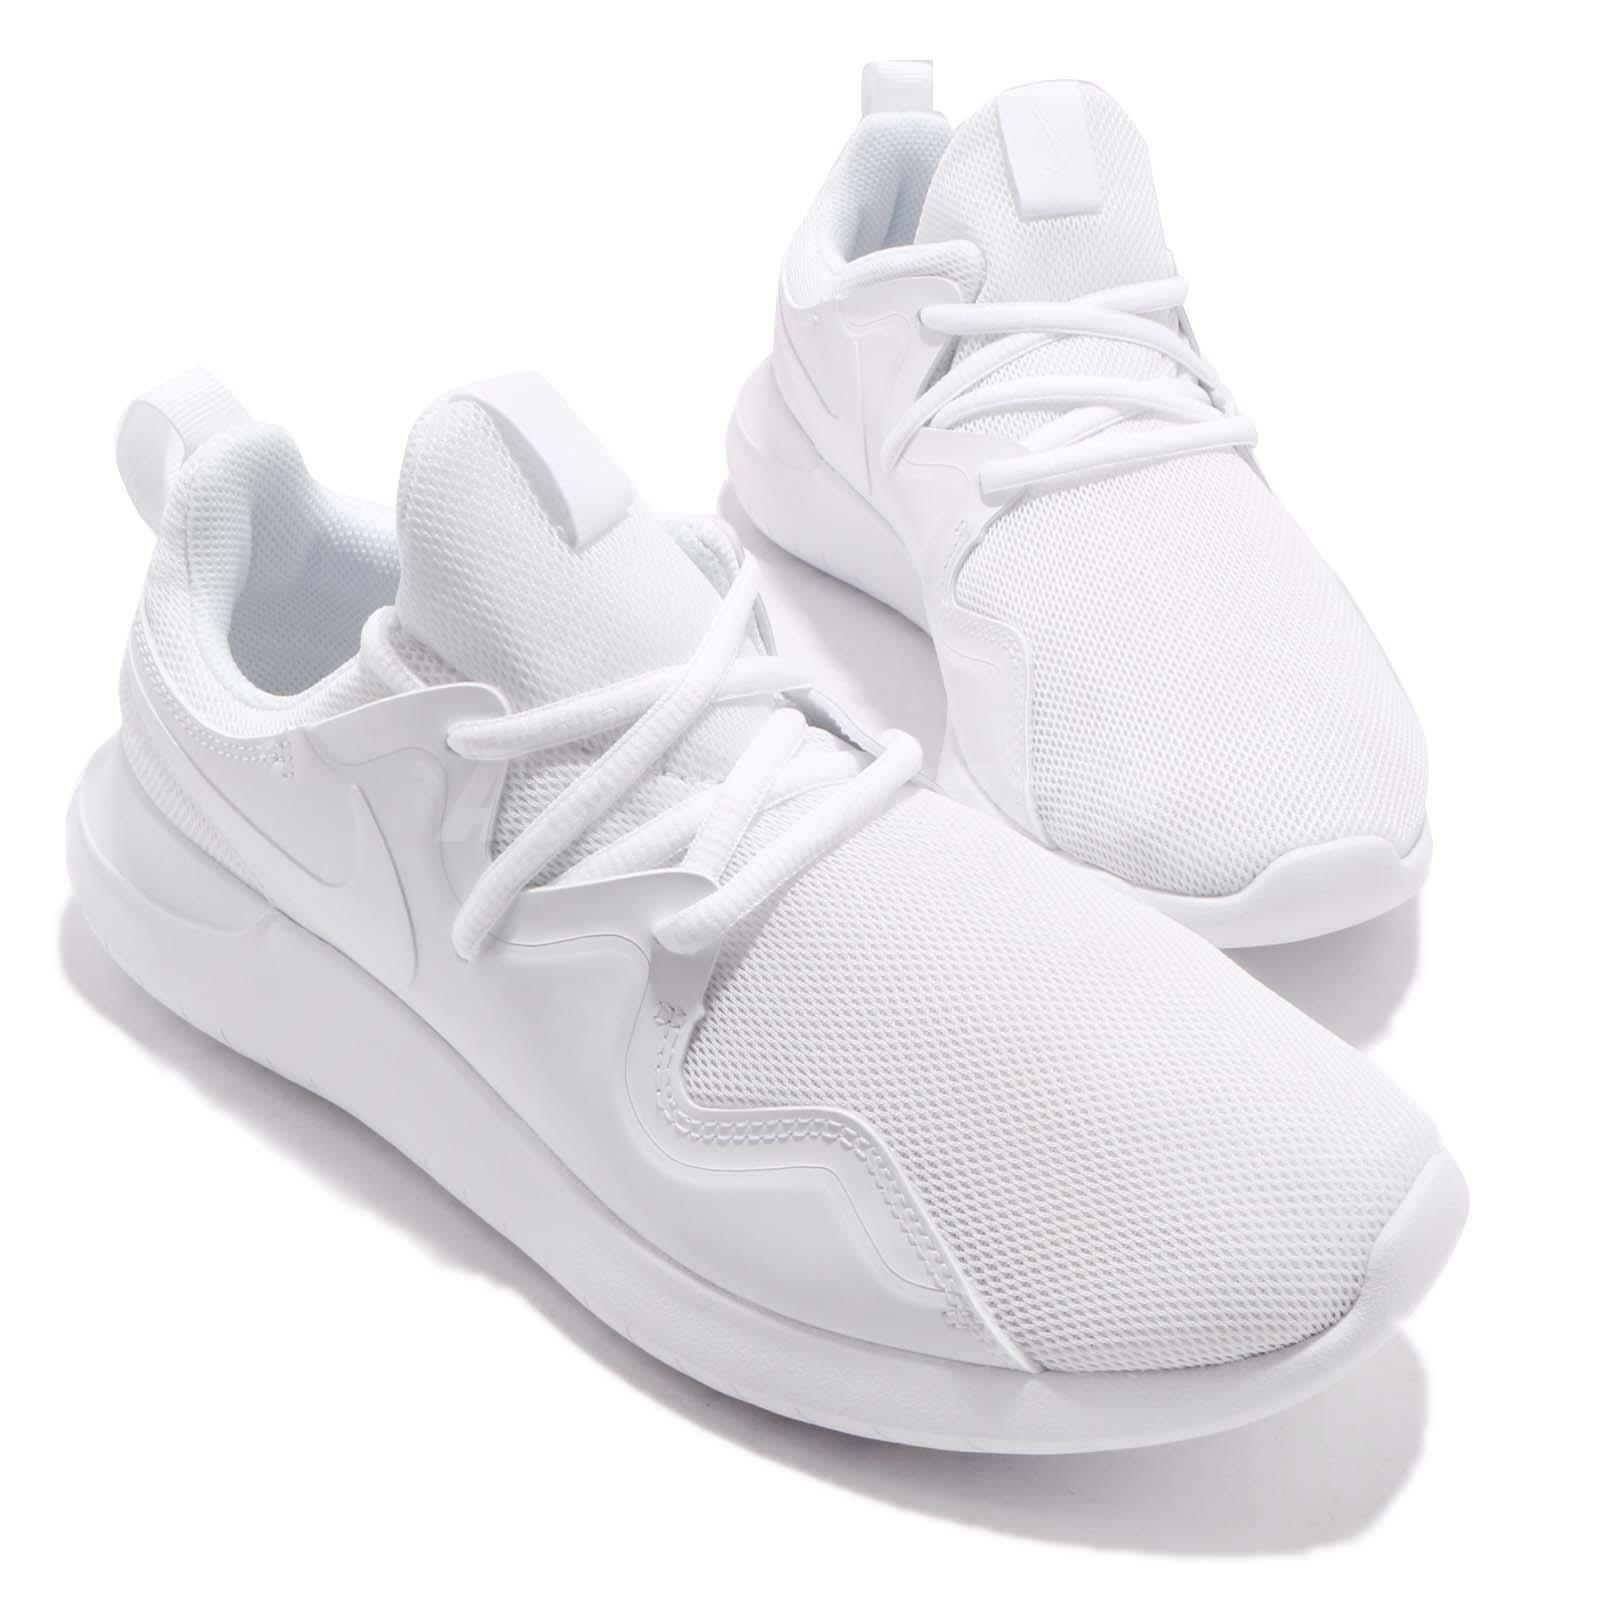 afb54928b26 Wmns Nike Tessen White Women Athletic Running Shoes Sneakers ...